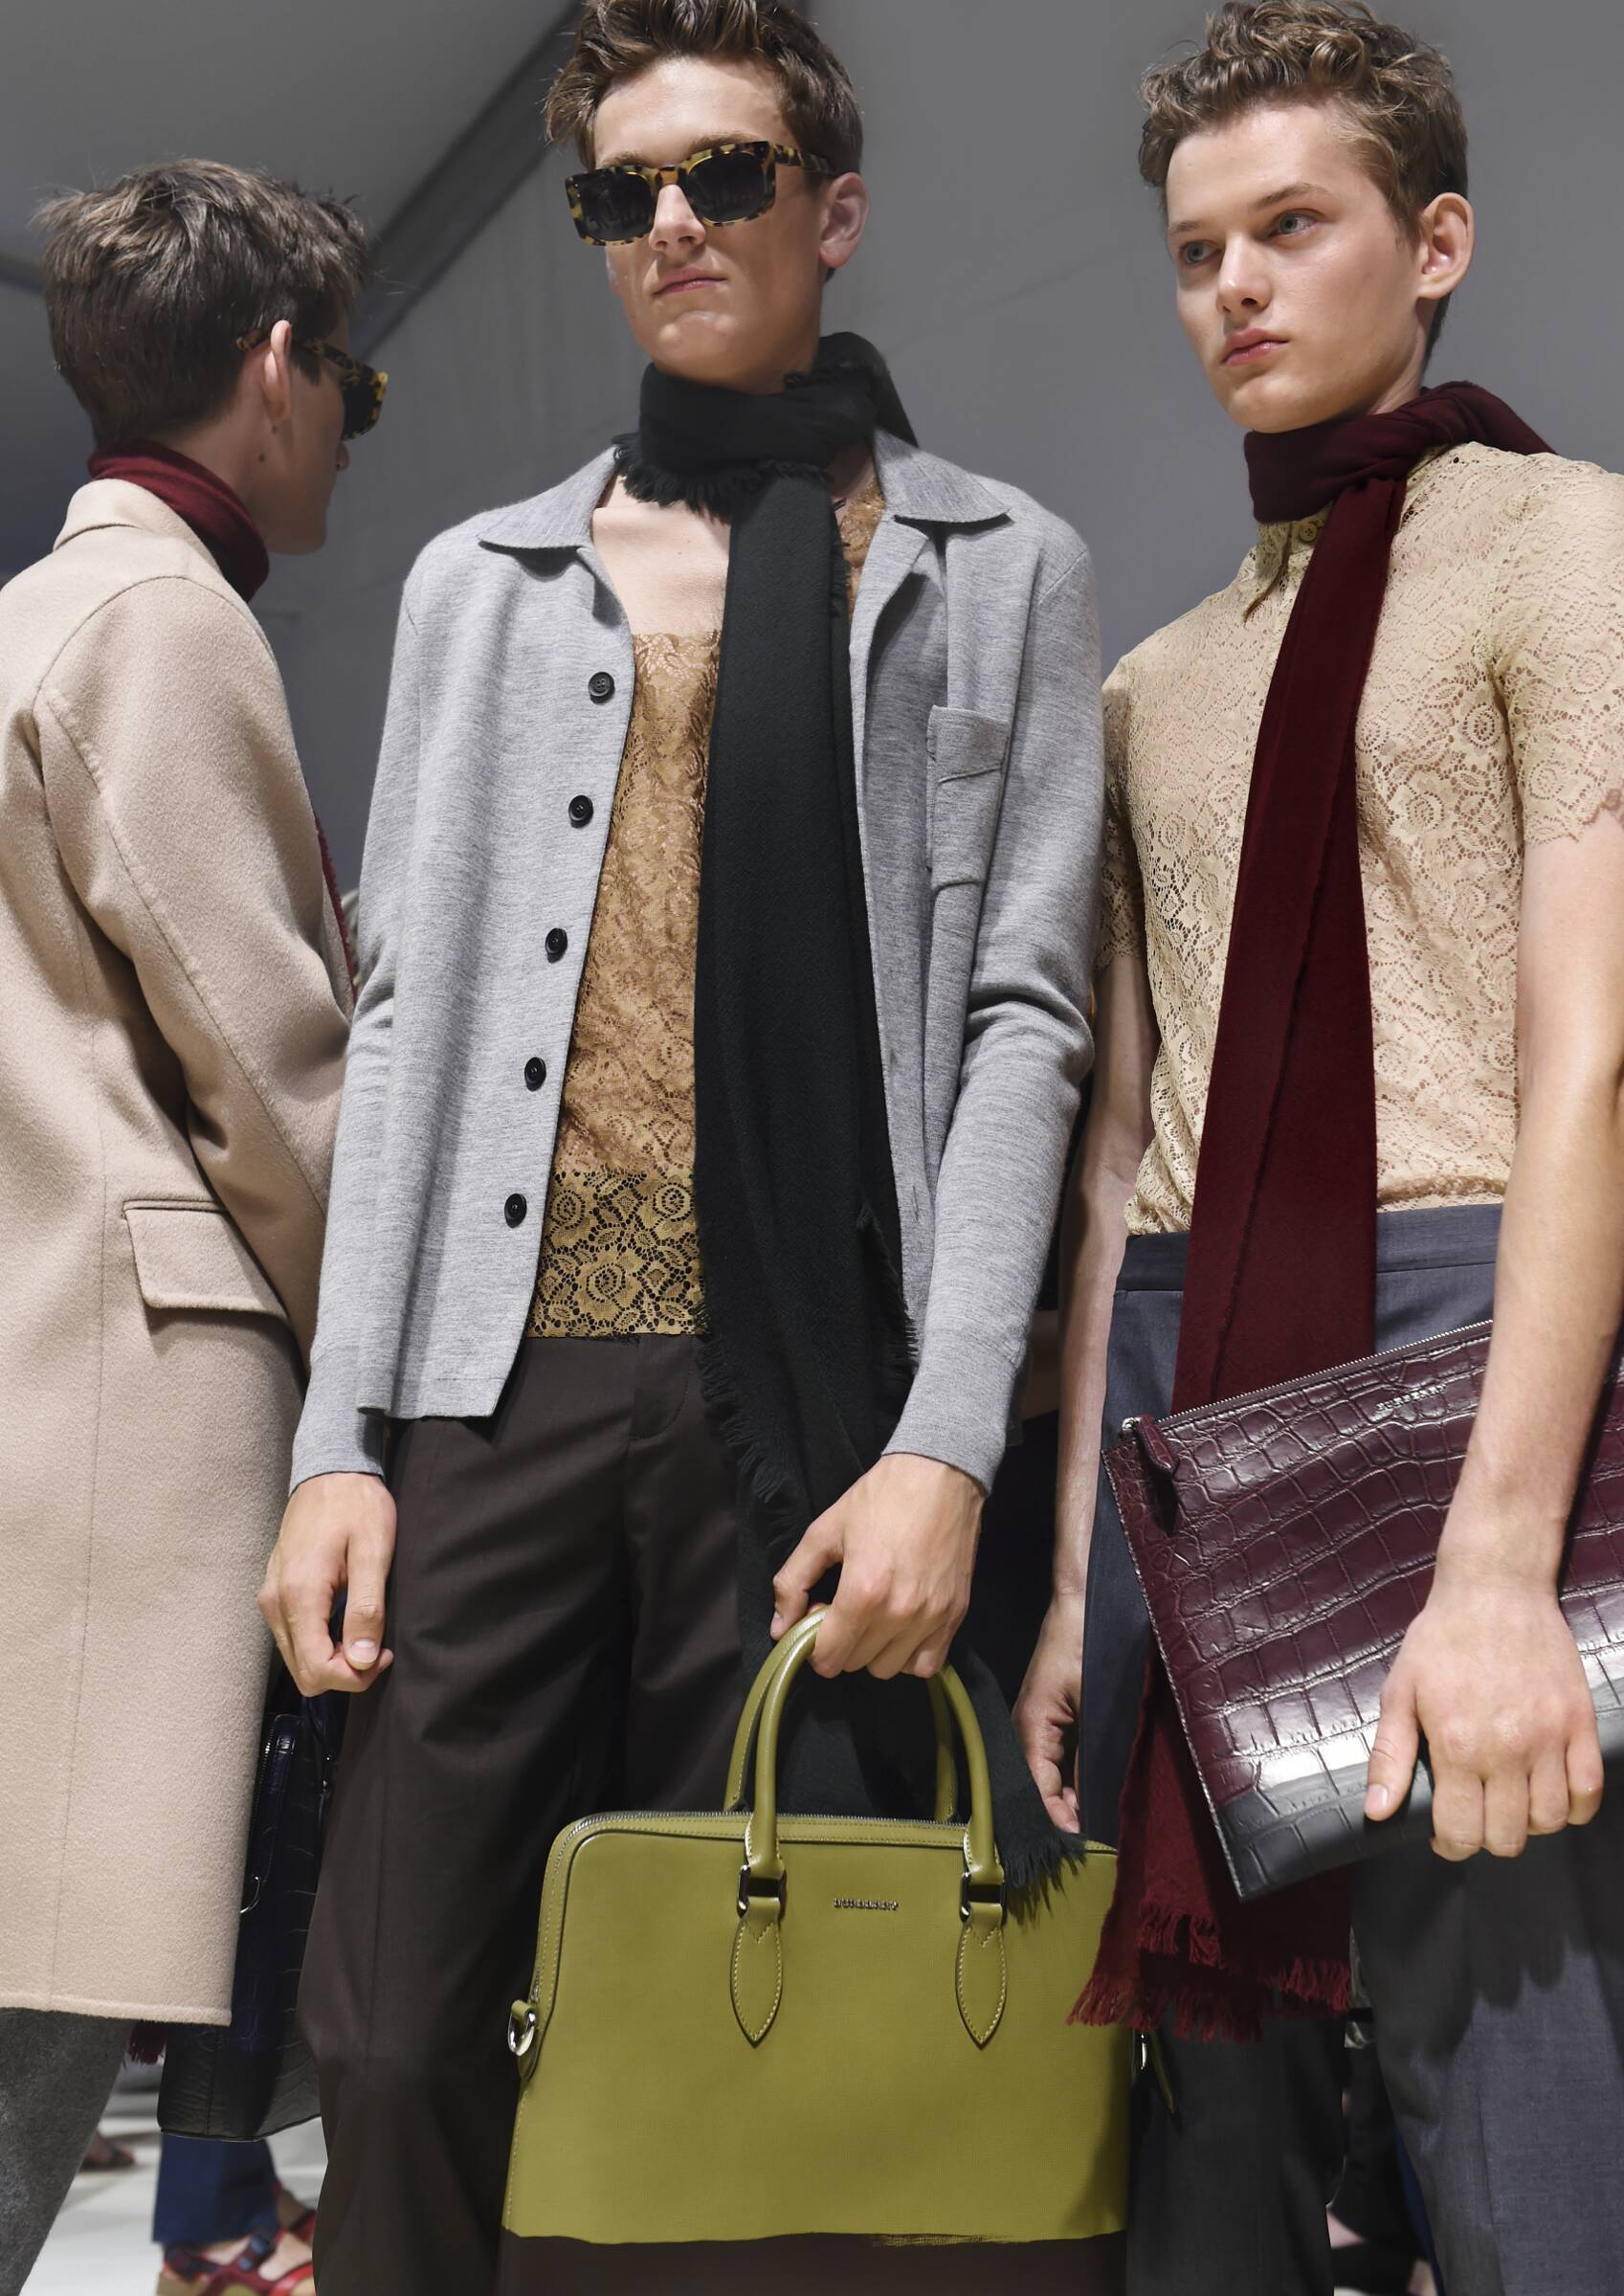 Backstage Burberry Menswear Trends 2016